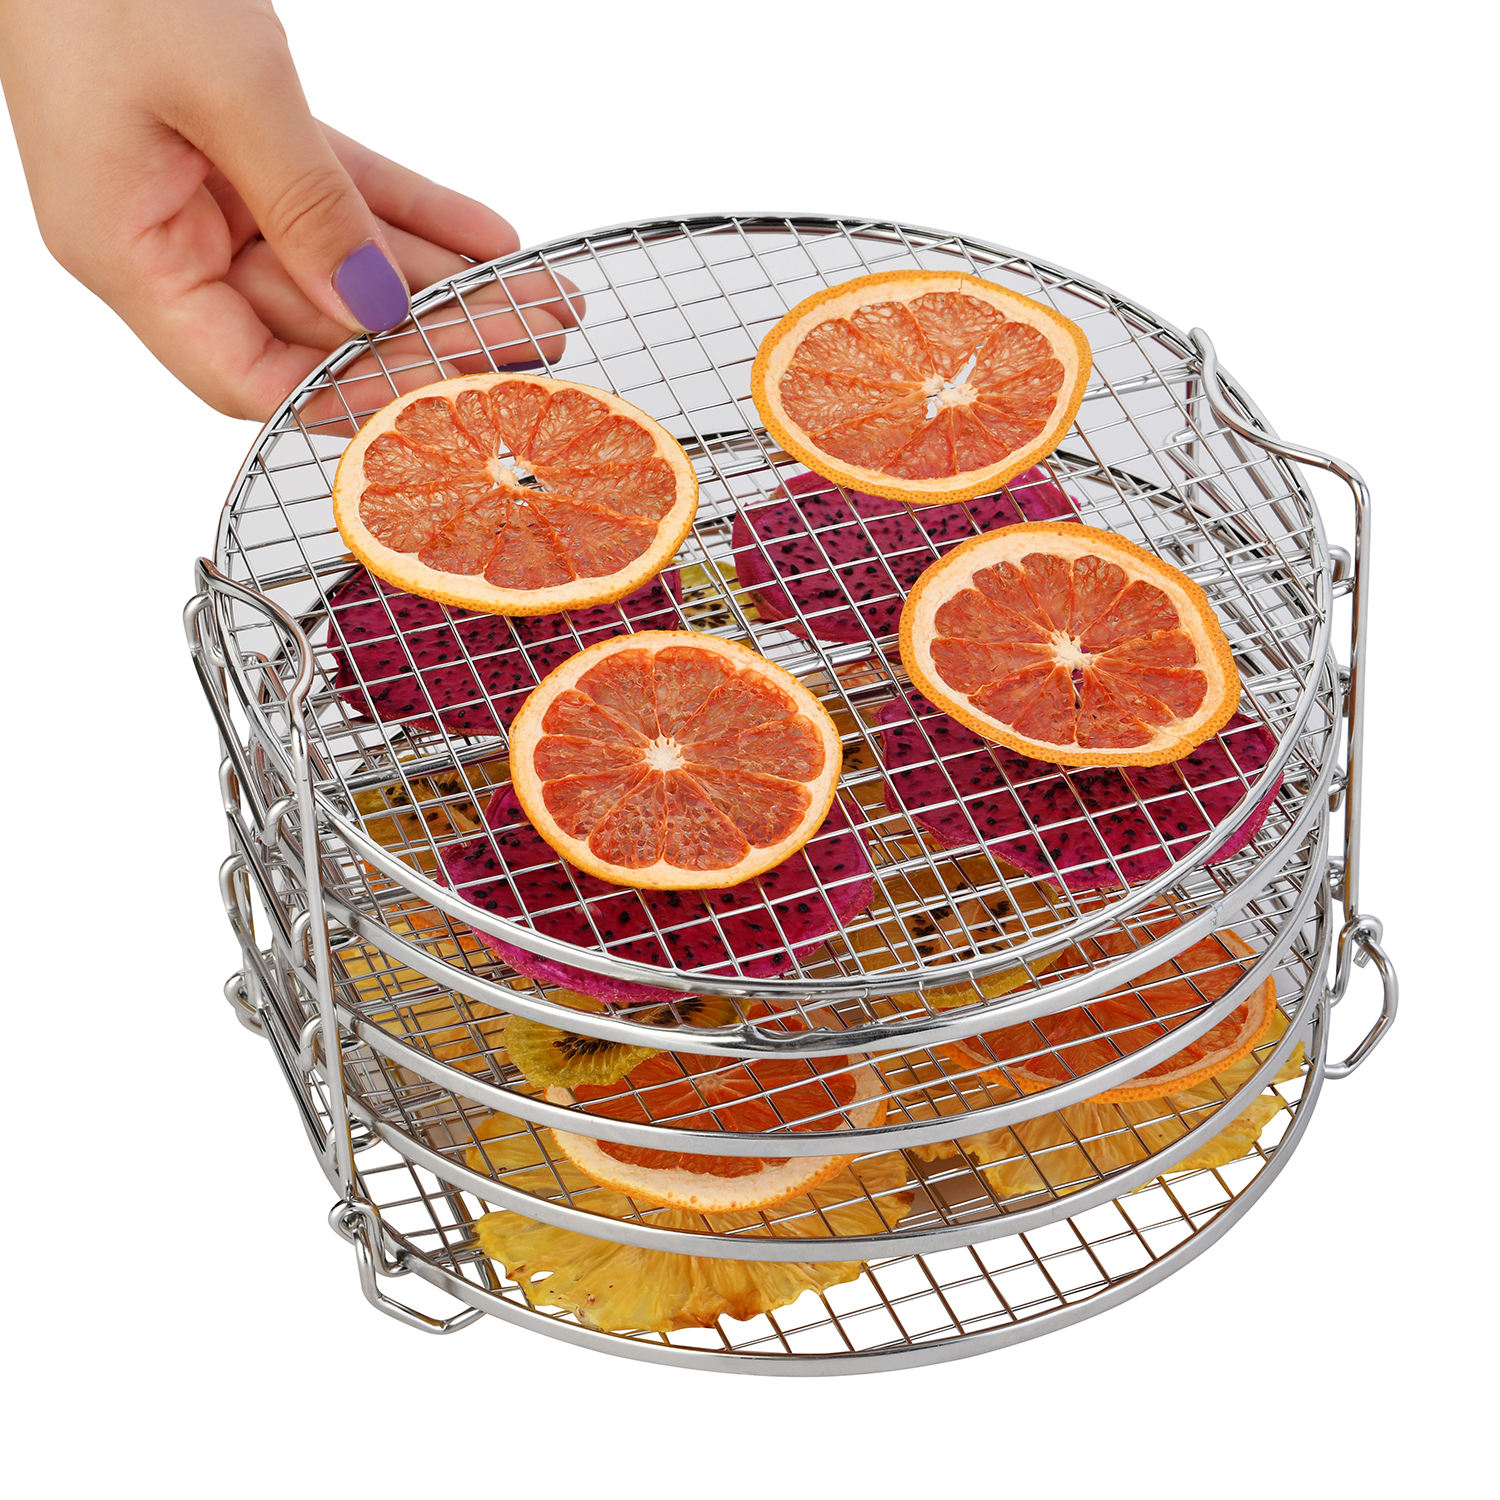 Dehydrator Rack, Grill Stand Air Fryer Rack with Five Stackable Layer with Feet 304 Food Grade Stainless Steel Dehydrator Stand